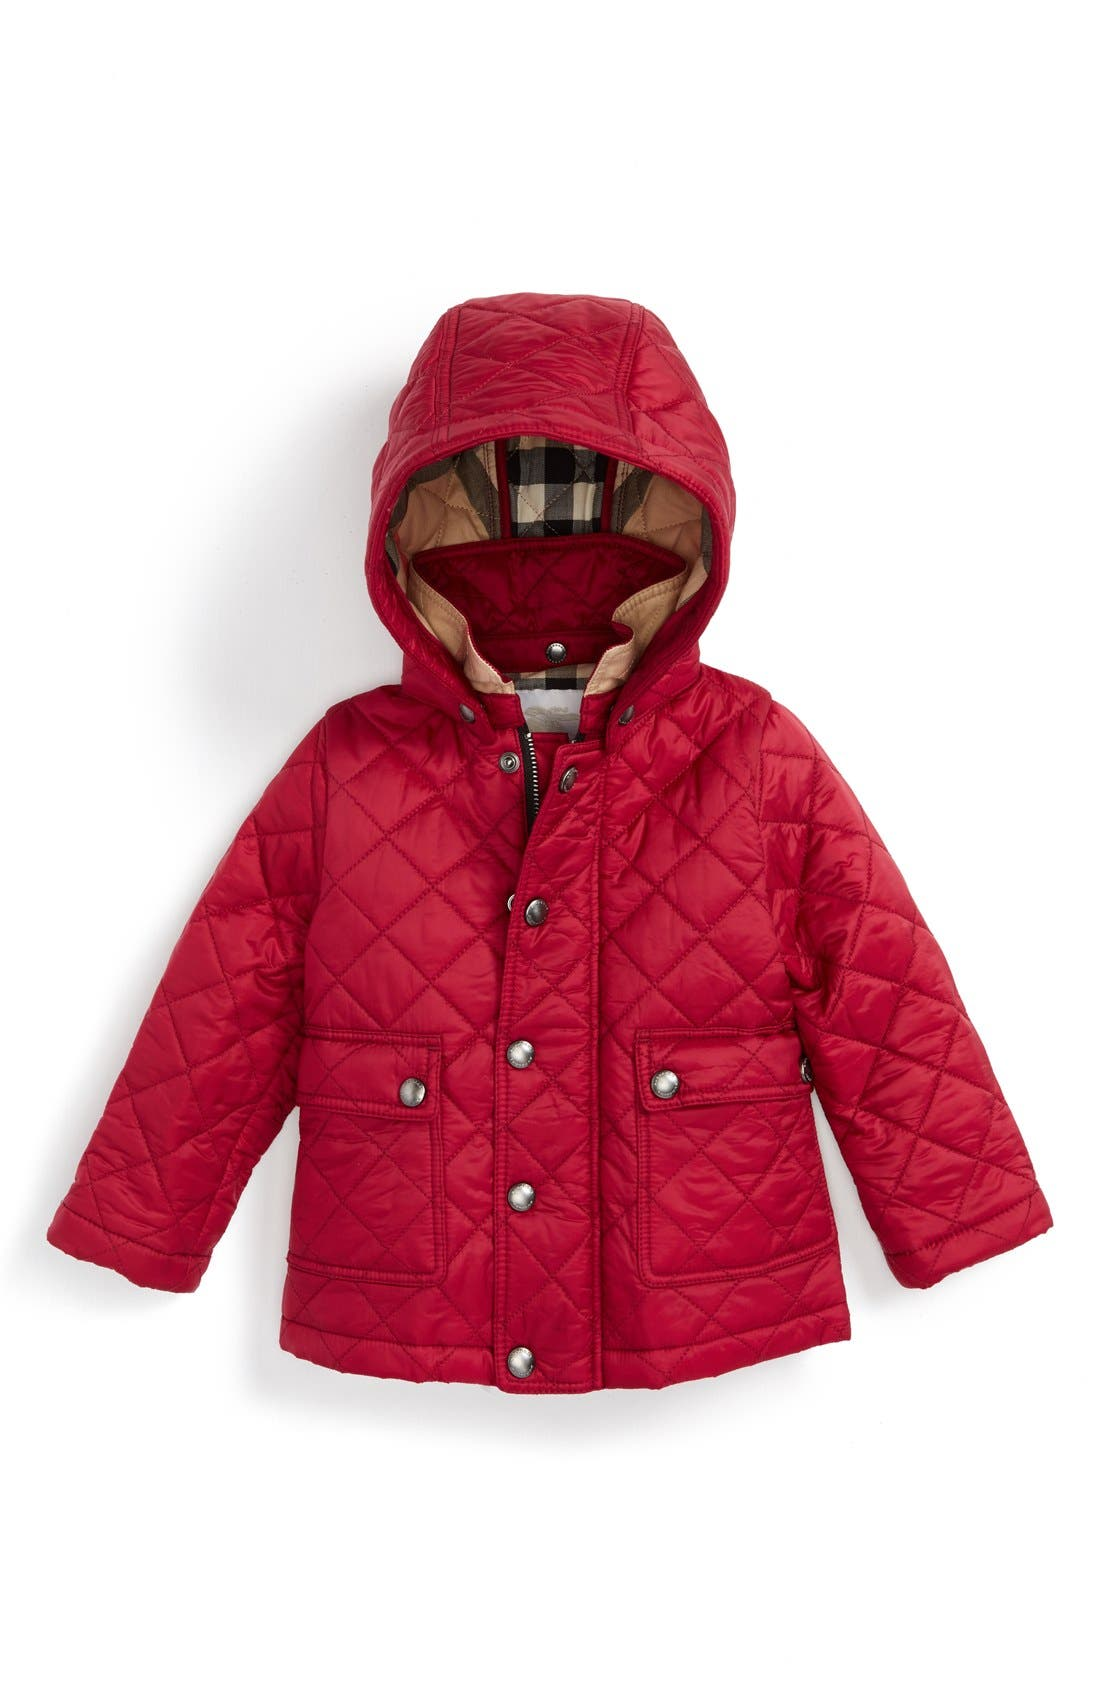 Alternate Image 1 Selected - Burberry 'Jamie' Quilted Hooded Puffer Jacket (Baby Girls)